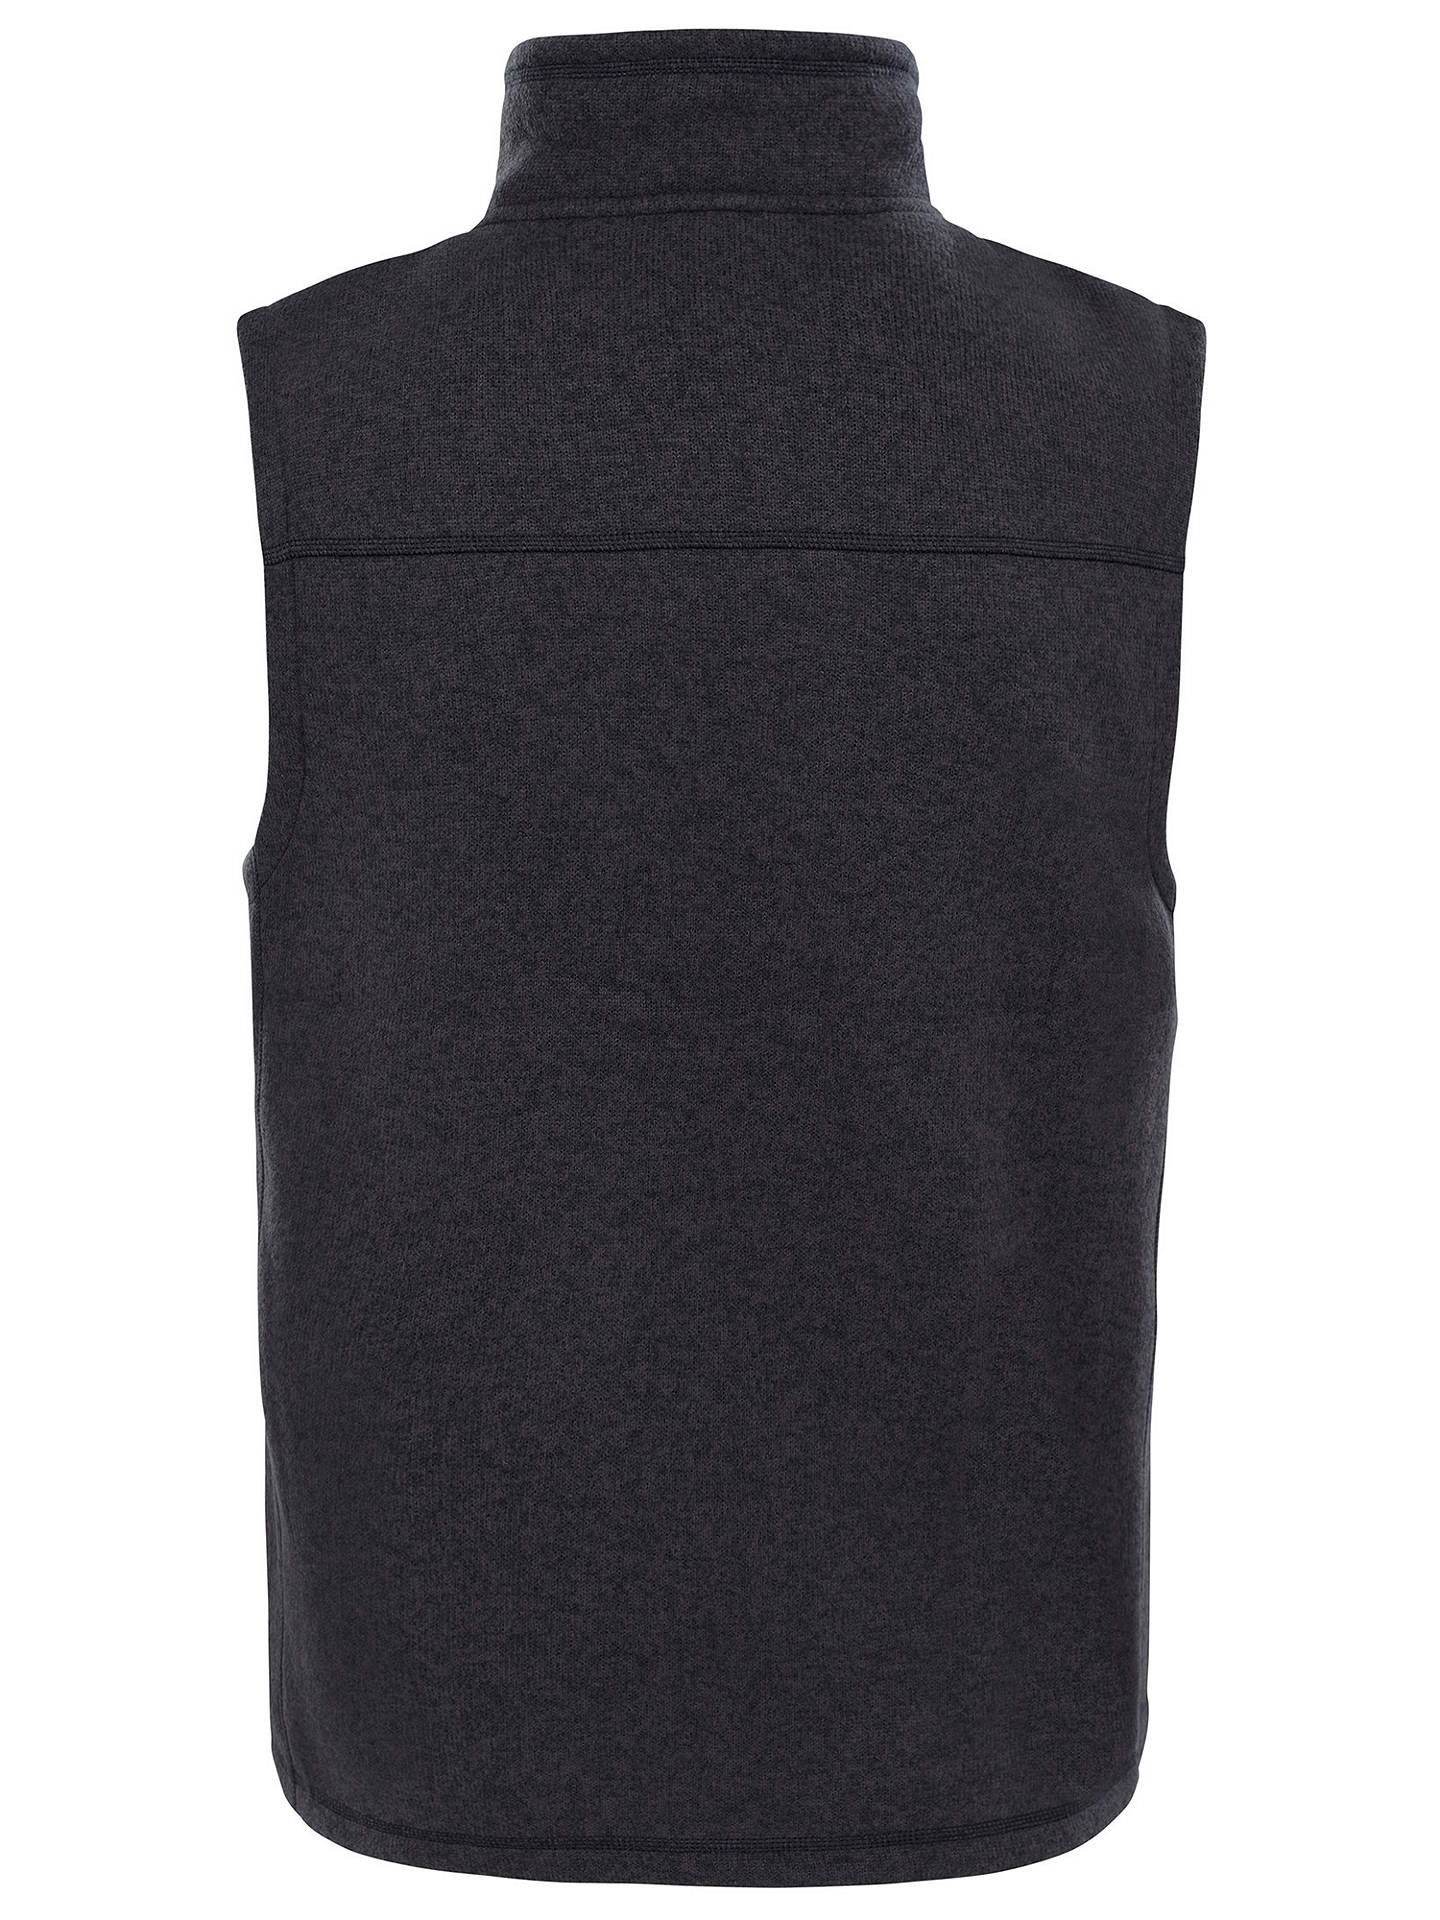 Buy The North Face Gordon Lyons Vest, Black, XL Online at johnlewis.com